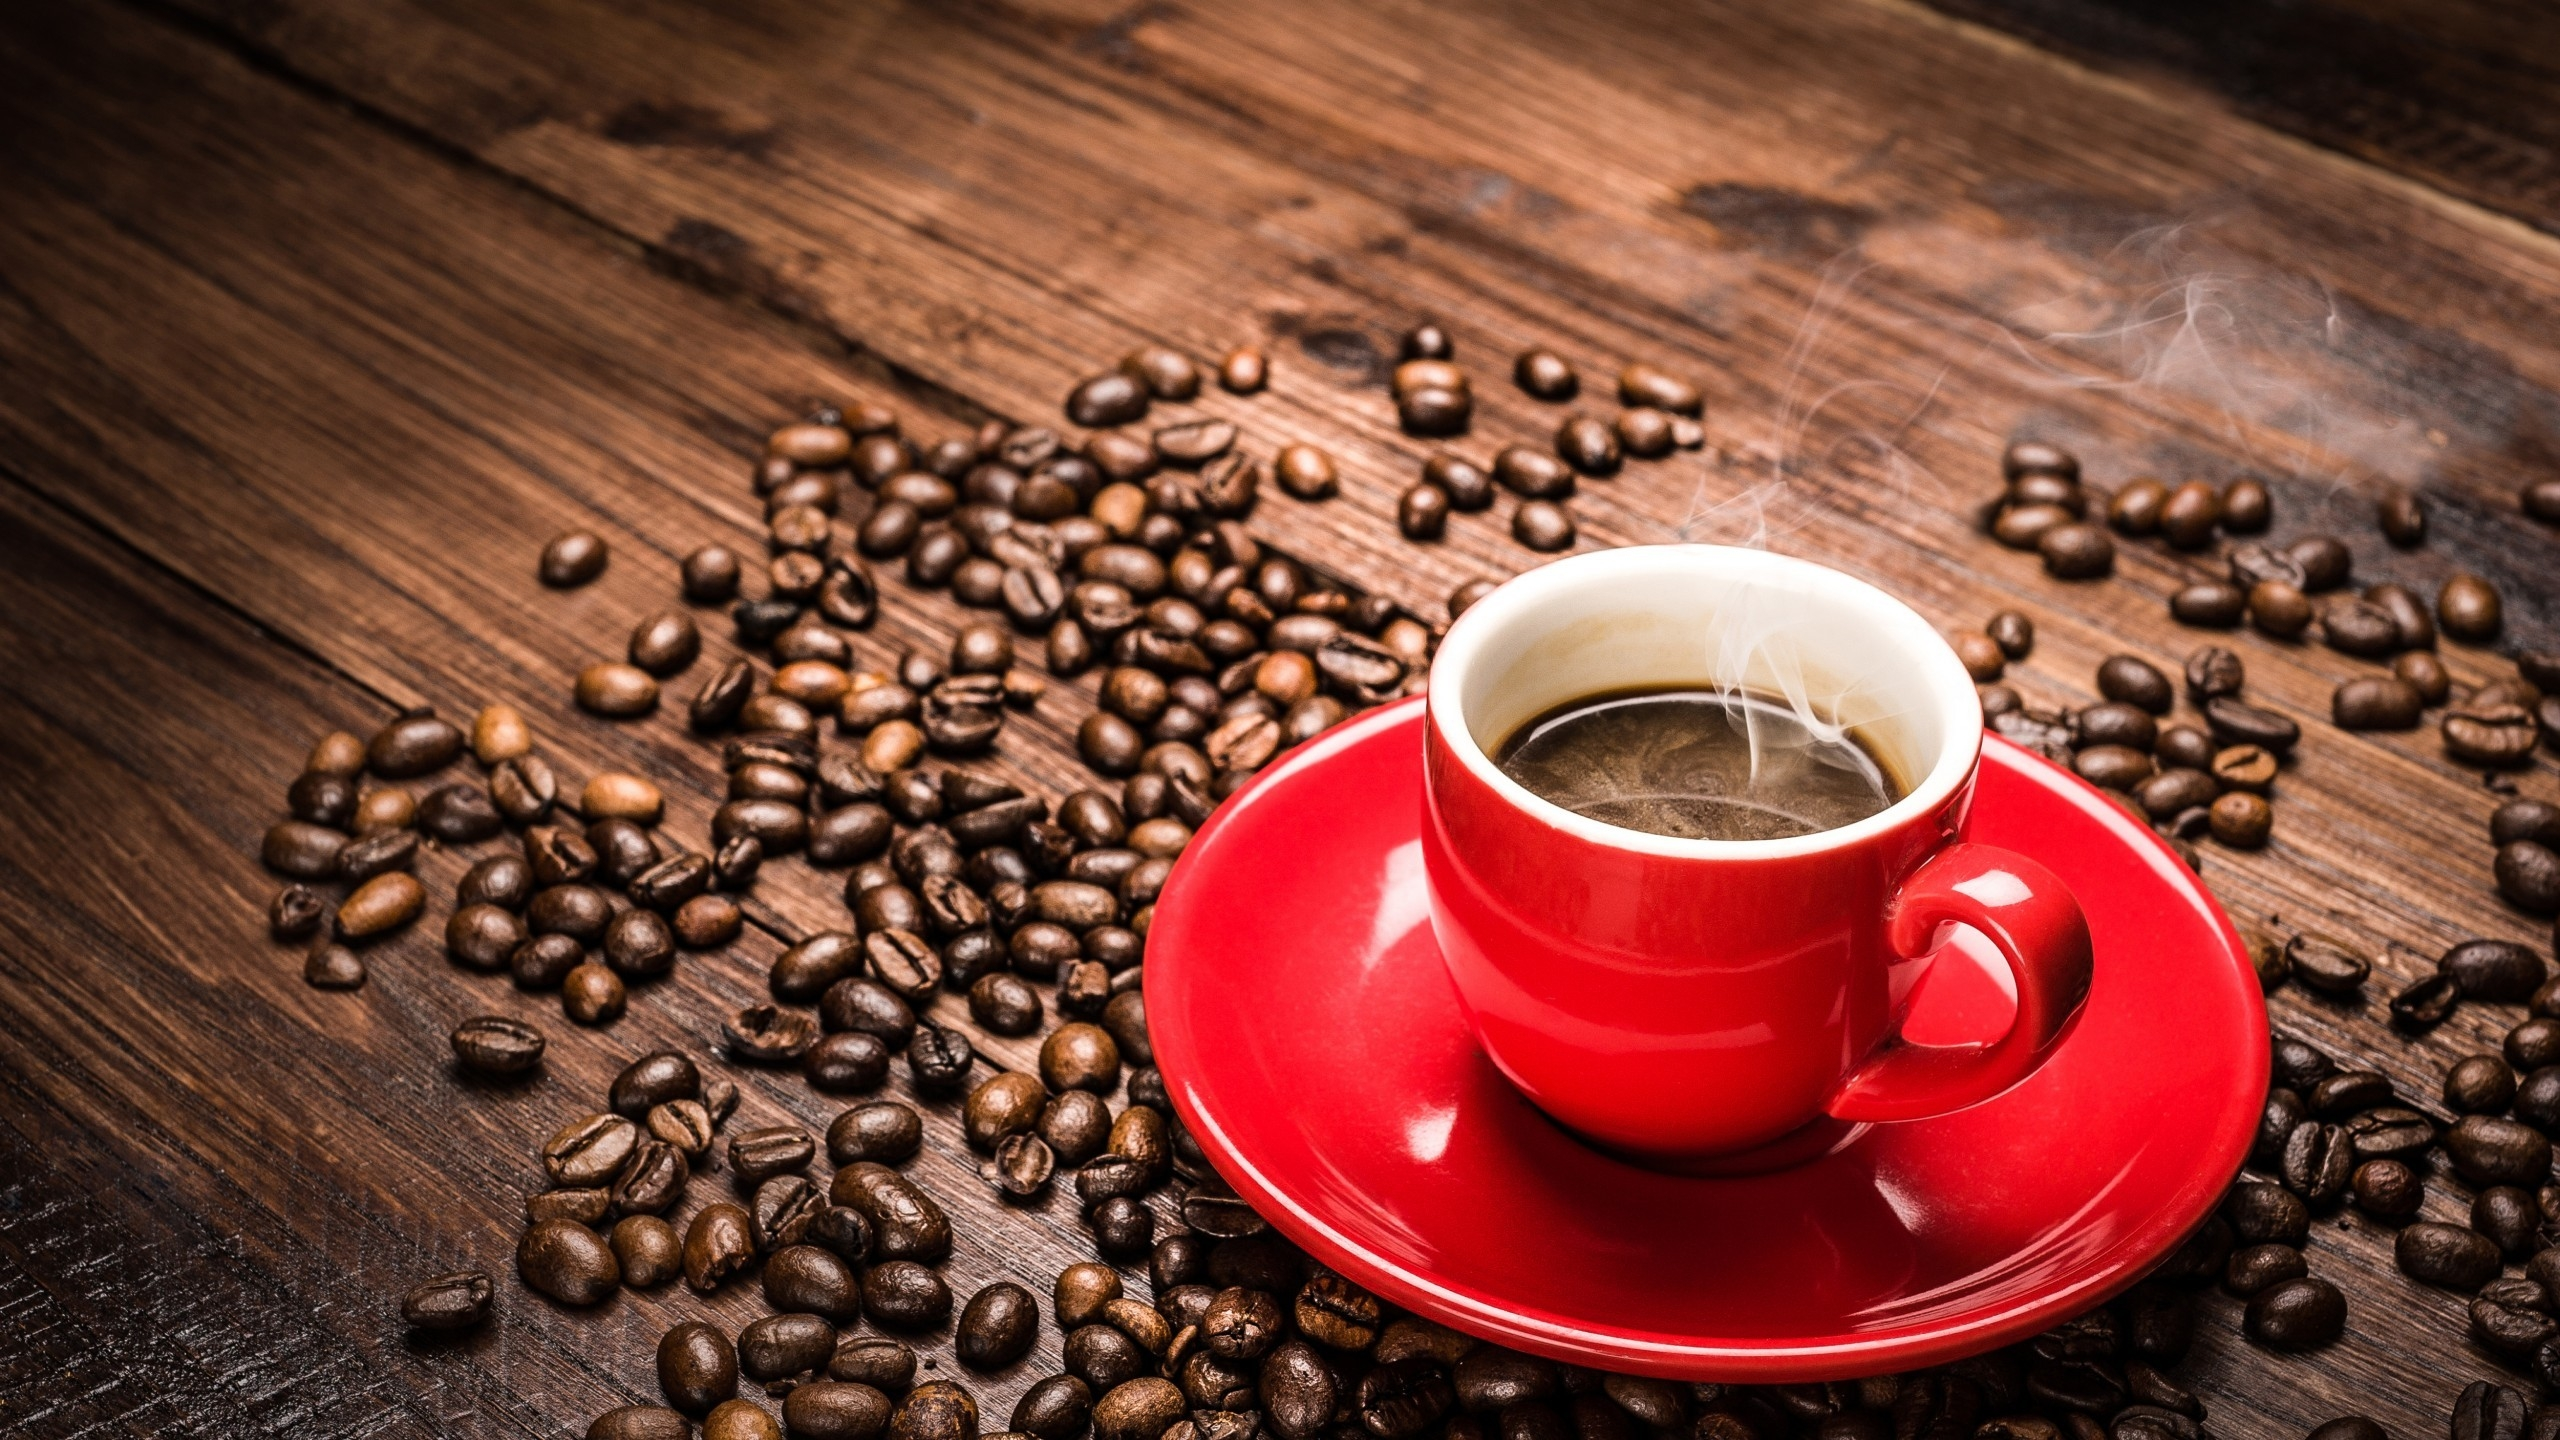 Coffee Beans Desktop Background fine coffee beans and cup background hd cupcake candy wallpaper to